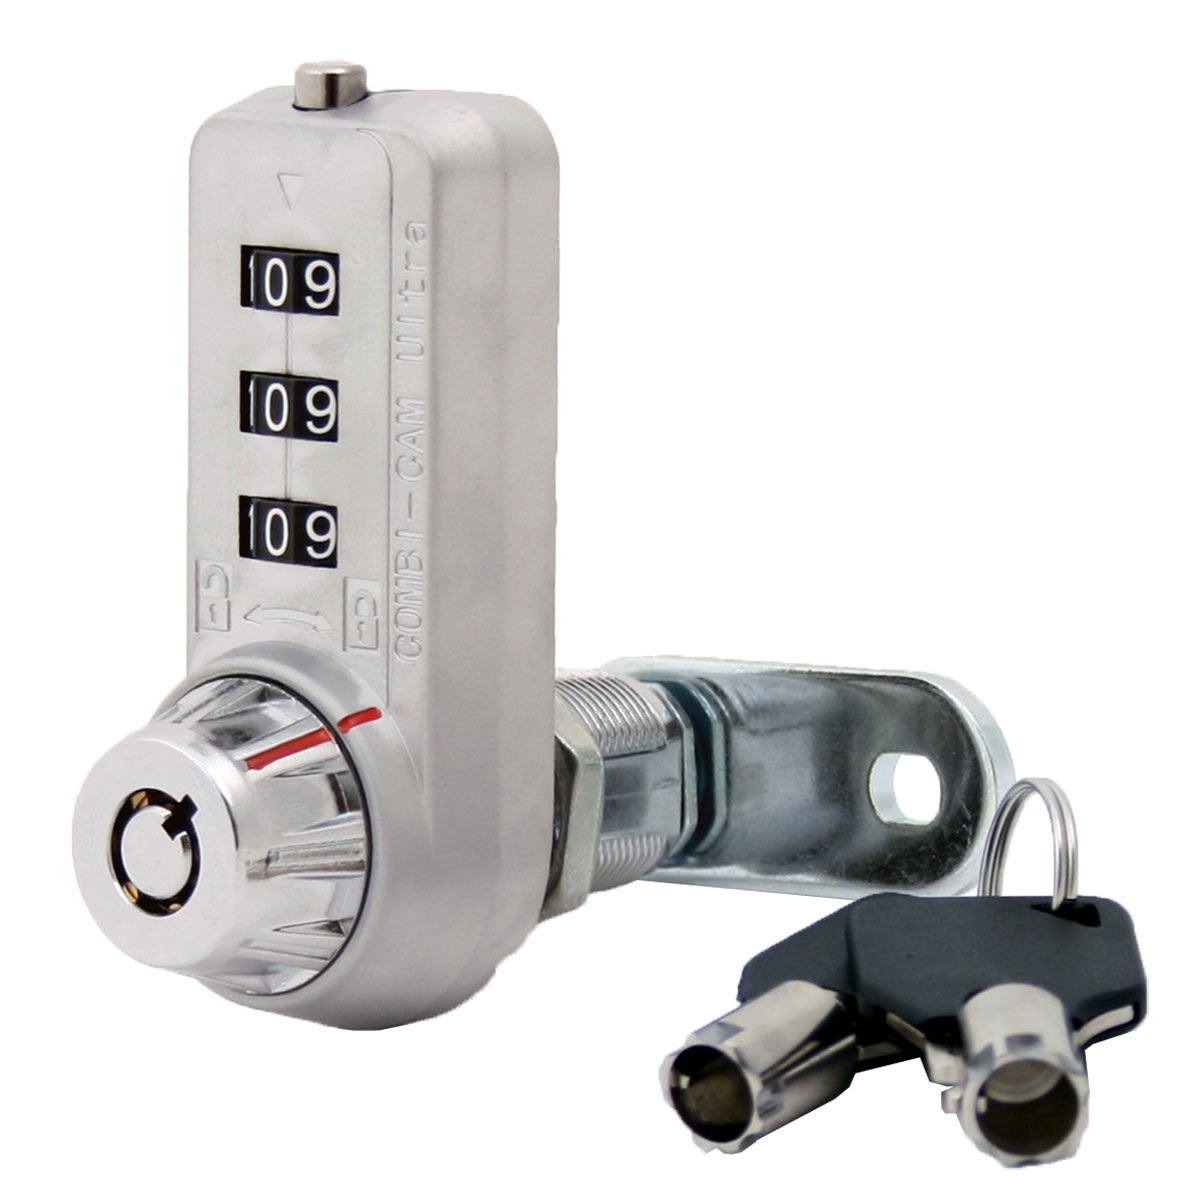 Combi-Cam Ultra, 7440L & Keys, Combination Cam Lock with Master Key Override, 1-1/8'' Cylinder Length, Chrome Finish